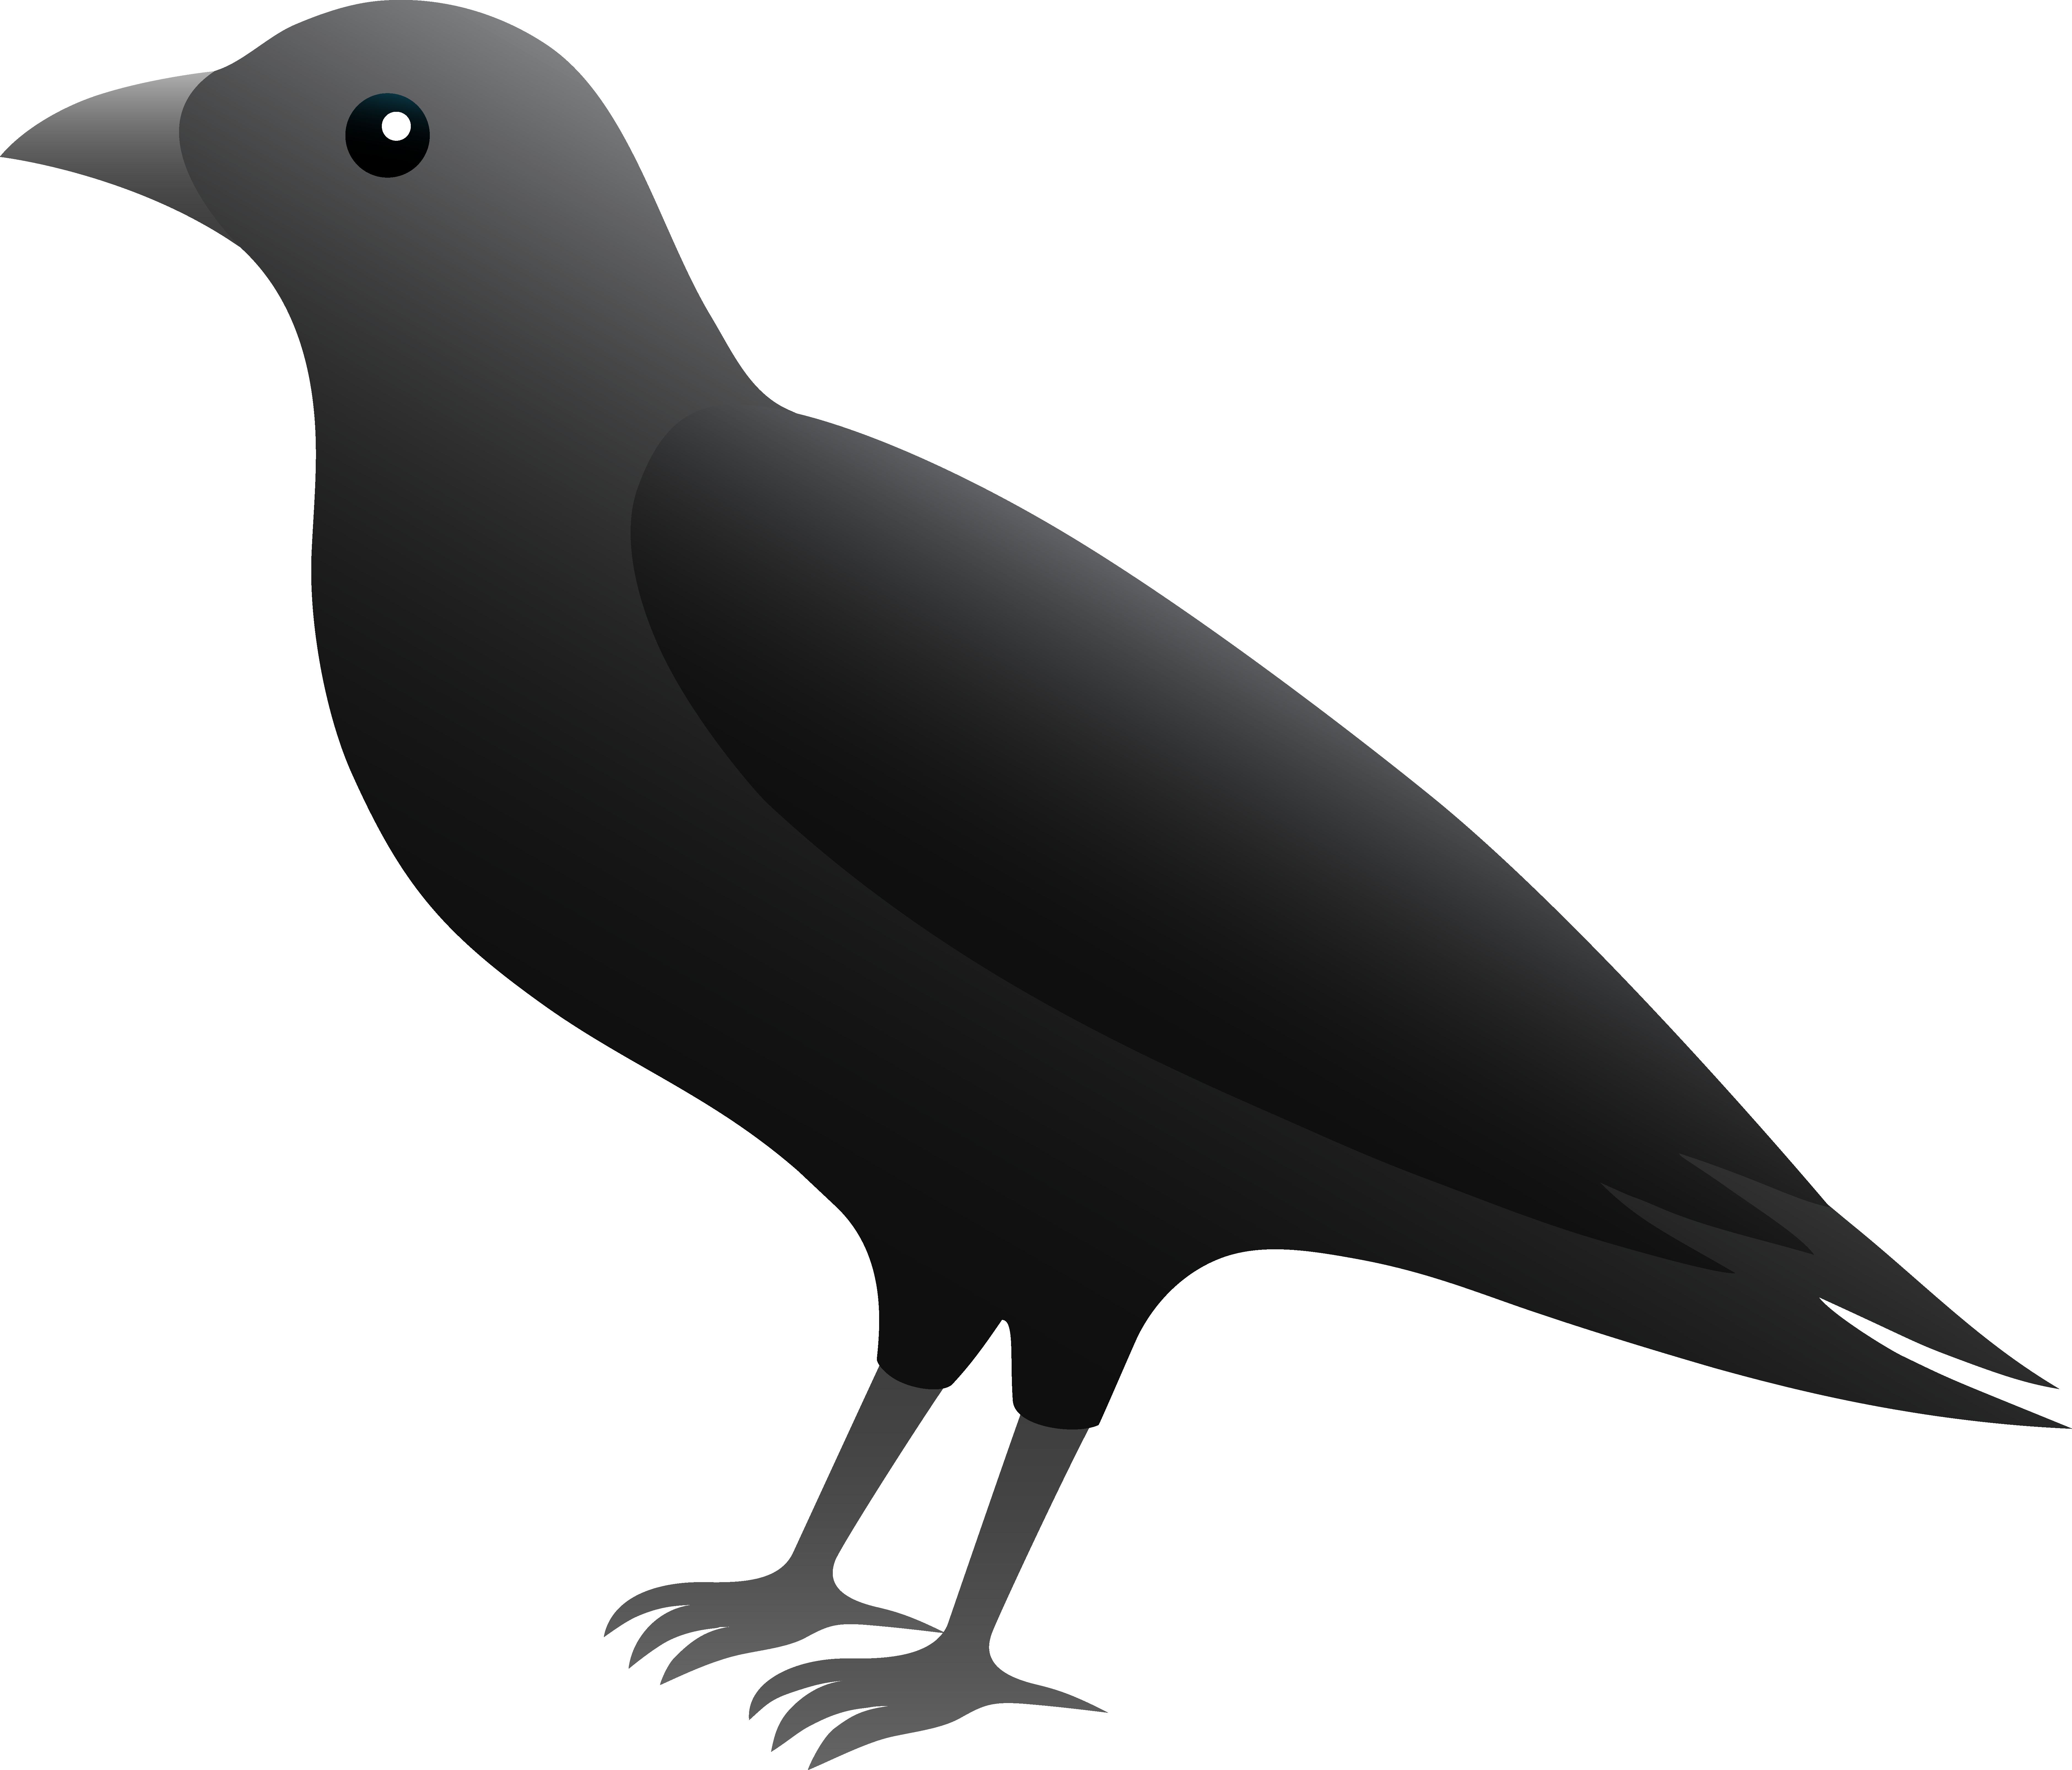 Free Crow Cliparts, Download Free Clip Art, Free Clip Art on.